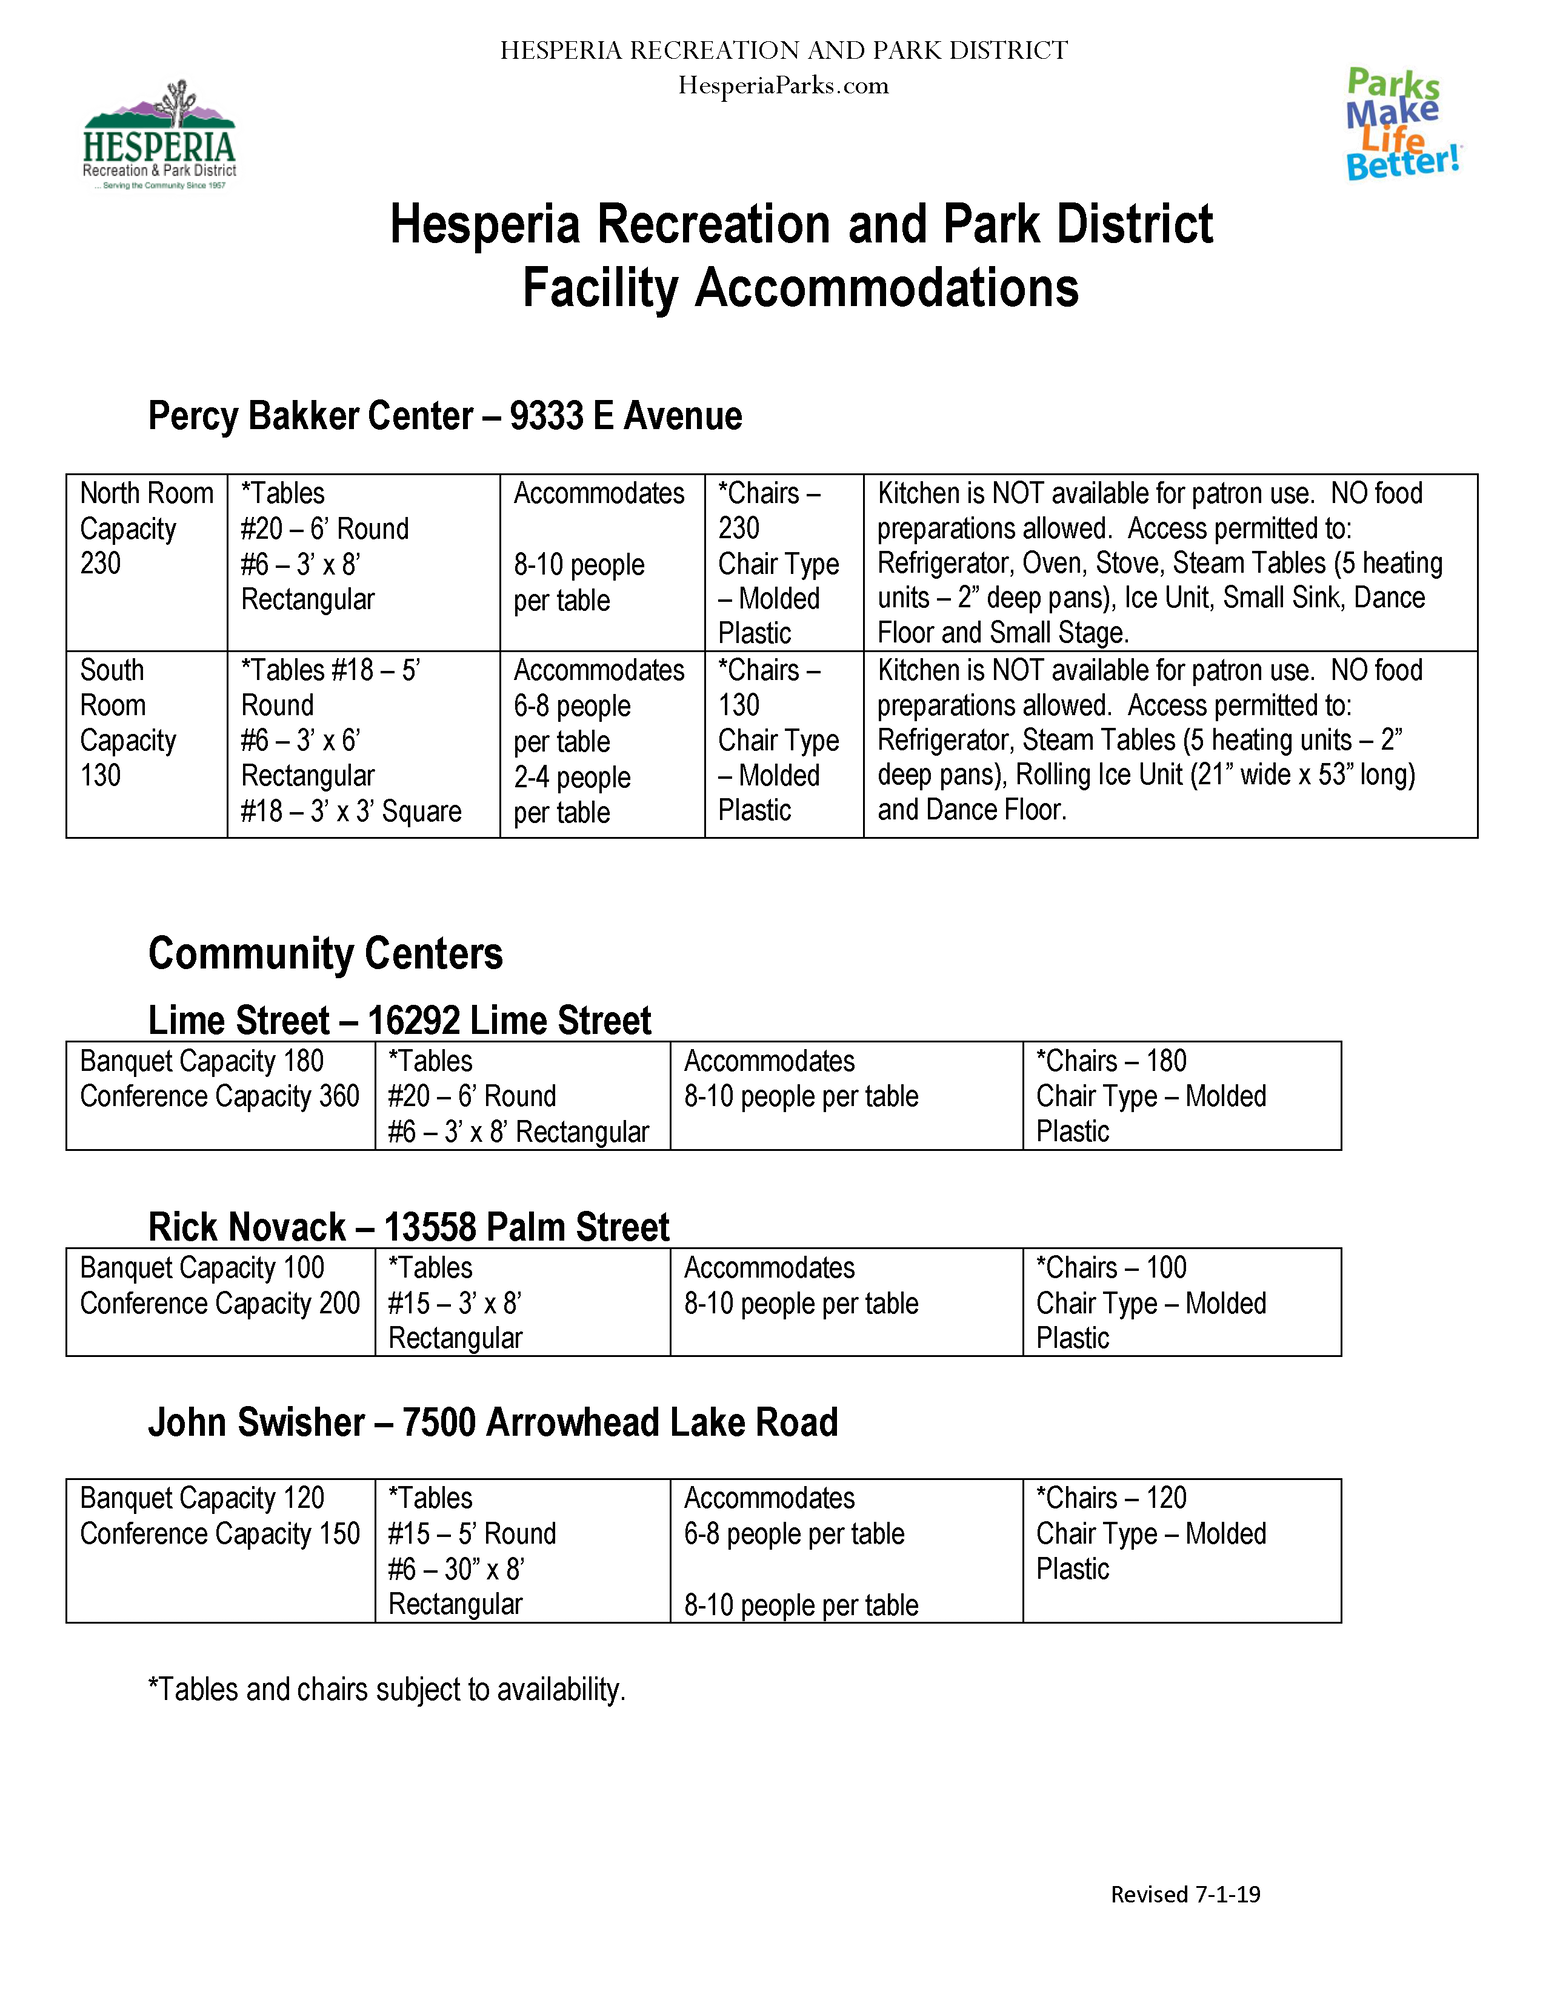 "Hesperia Recreation and Park District Facility Accommodations. Percy Bakker Center- 9333 E Avenue. North Room Capacity 230. *Tables #20-6' round #6- 3'x8' rectangular. Accommodates 8-10 people per table for rectangular. *Chairs 230 chairs Type- molded plastic. Kitchen is NOT available for patron use. No food preparations allowed. Access permitted to: refrigerator, oven, stove, steam tables (5 heating unites-2"" deep pans). Ice unit, small sink, dance floor, and small stage. Percy Bakker South Room Capacity 130. Tables #18- 5' round #6 3'x3' square. Accommodates 6-8 people per table for round, 2-4 people per table for square. *Chairs 10 Type- Molded plastic. Kitchen is NOT available for patron use. No food preparations allowed. Access permitted to: refrigerator, steam tables (5 heating units-2"" deep pans), rolling ice unit (21"" wide x 53"" long) and dance floor. Community Centers: Lime Street- 16292 Lime Street Banquet capacity 180 Conference capacity 200. *Tables #20- 6' round #6 3'x8' rectangular. Accommodates 8-10 people per table. *Chairs 180 Type- molded plastic. Rick Novack- 13558 Palm Street Banquet capacity 100 Conference capacity 200. *Tables #15- 3'x8' rectangular. Accommodates 8-10 people per table. *Chairs 100 Type- Molded plastic. John Swisher-7500 Arrowhead Lake Road Banquet Capacity 120 Conference Capacity 150. *Tables #15- 5' round #6- 30""x8' rectangular. Accommodates 6-8 people per table for round., 8-10 people per table for rectangular. *Chairs 120 Type- Molded plastic. *Tables and chairs subject to availability. Revised 7-1-19."